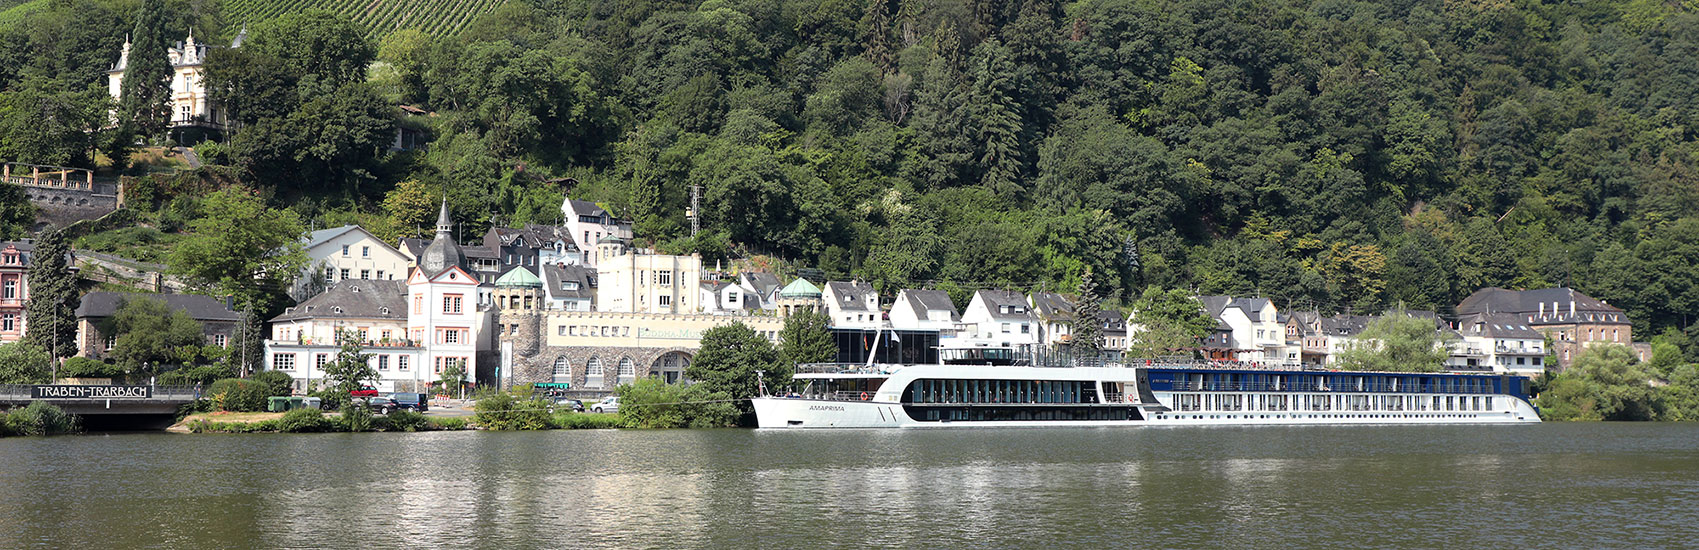 AmaWaterways Seven River Journey Through Europe